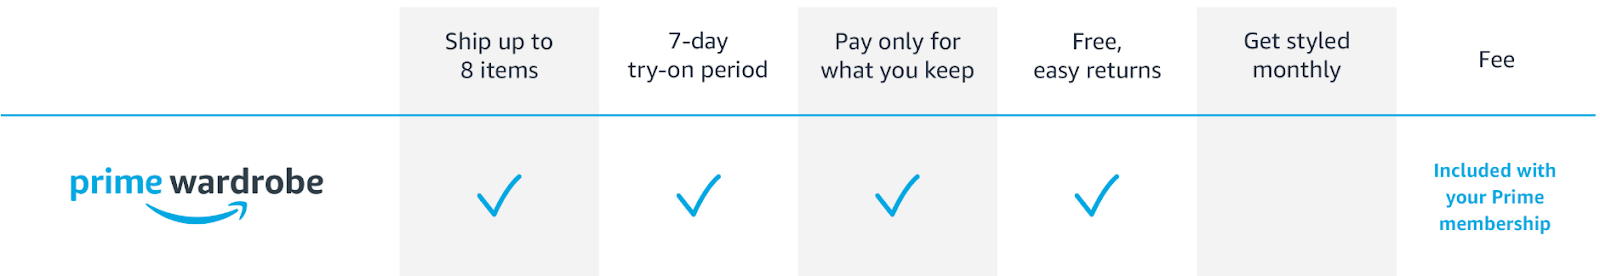 amazon prime wardrobe program trial process allowing seven days to try-on period followed by fees for any items selected to keep.